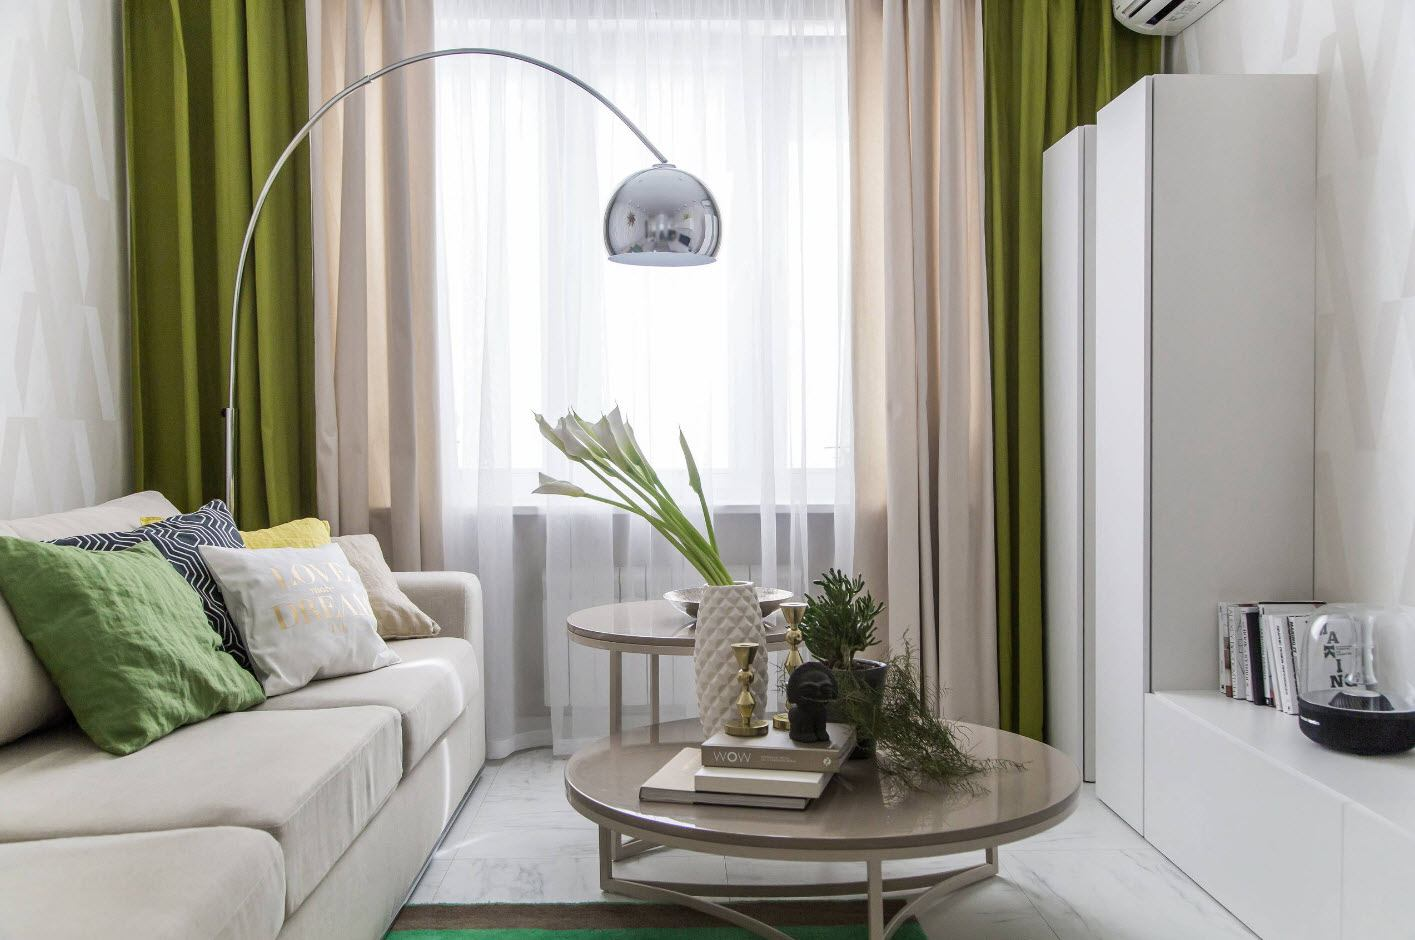 White Living Room: Different Style Interiors with Photos. Green tulle curtains and round coffee tables